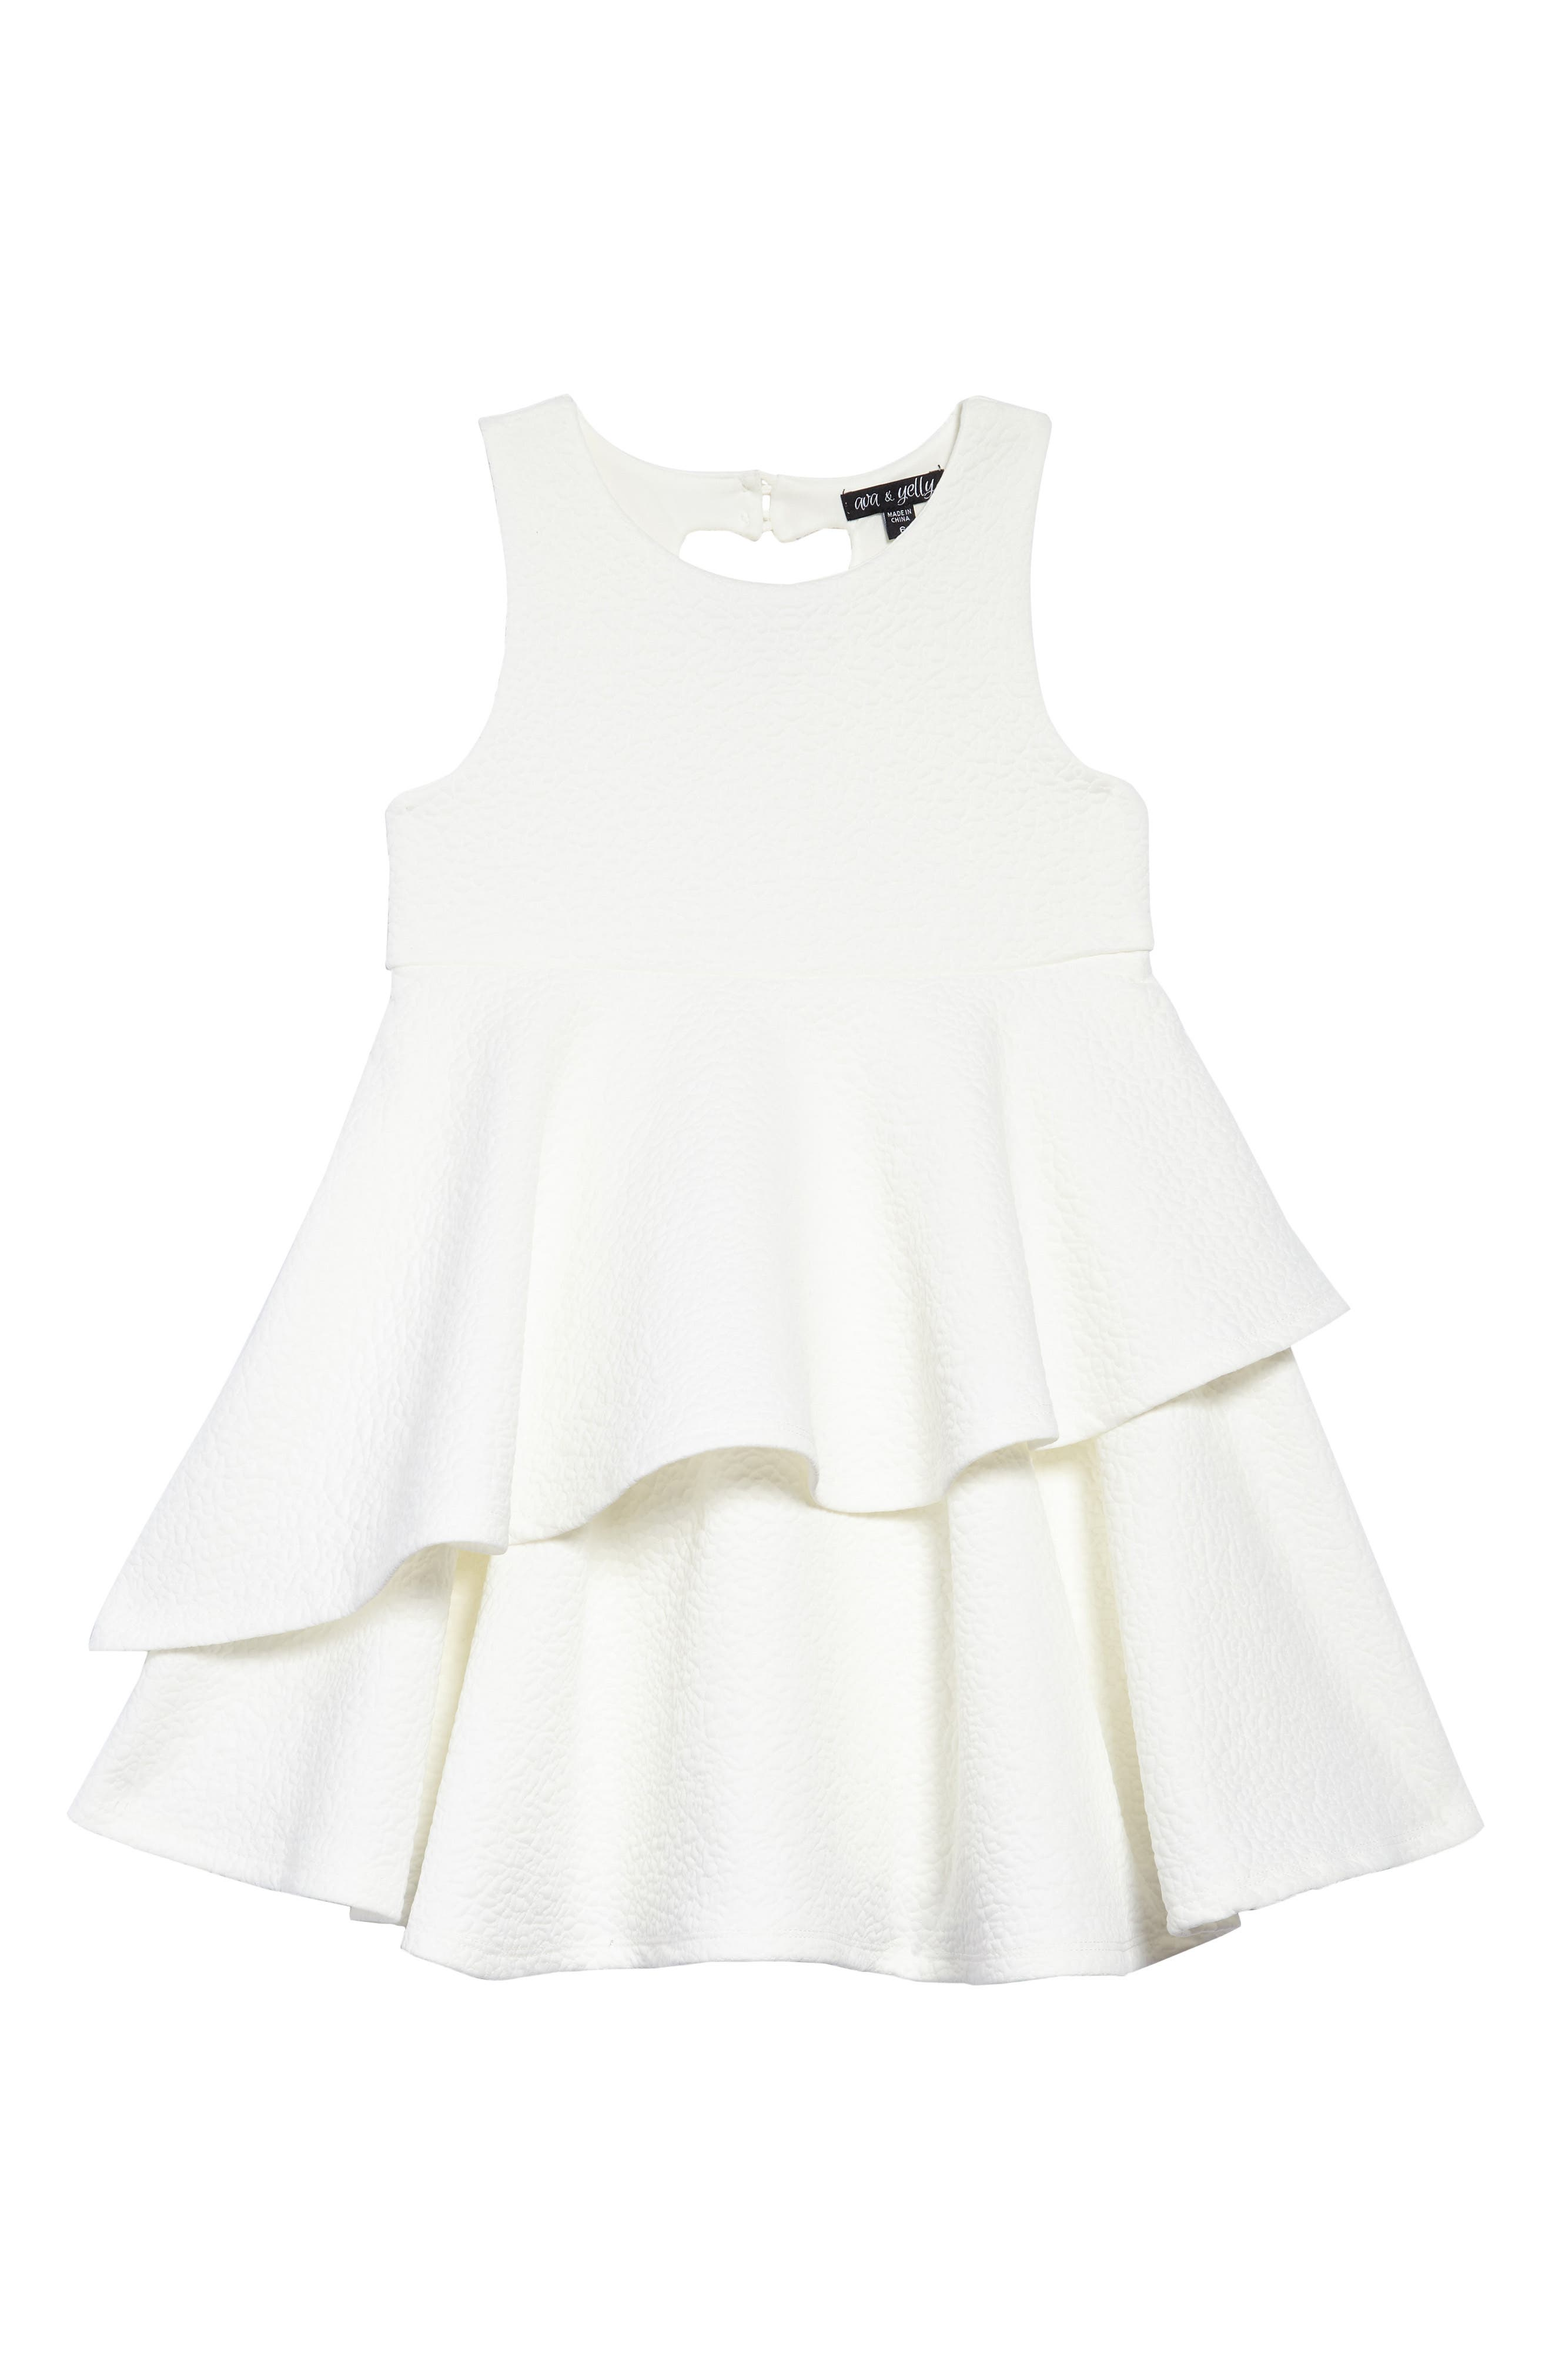 Tiered Dress,                         Main,                         color, White